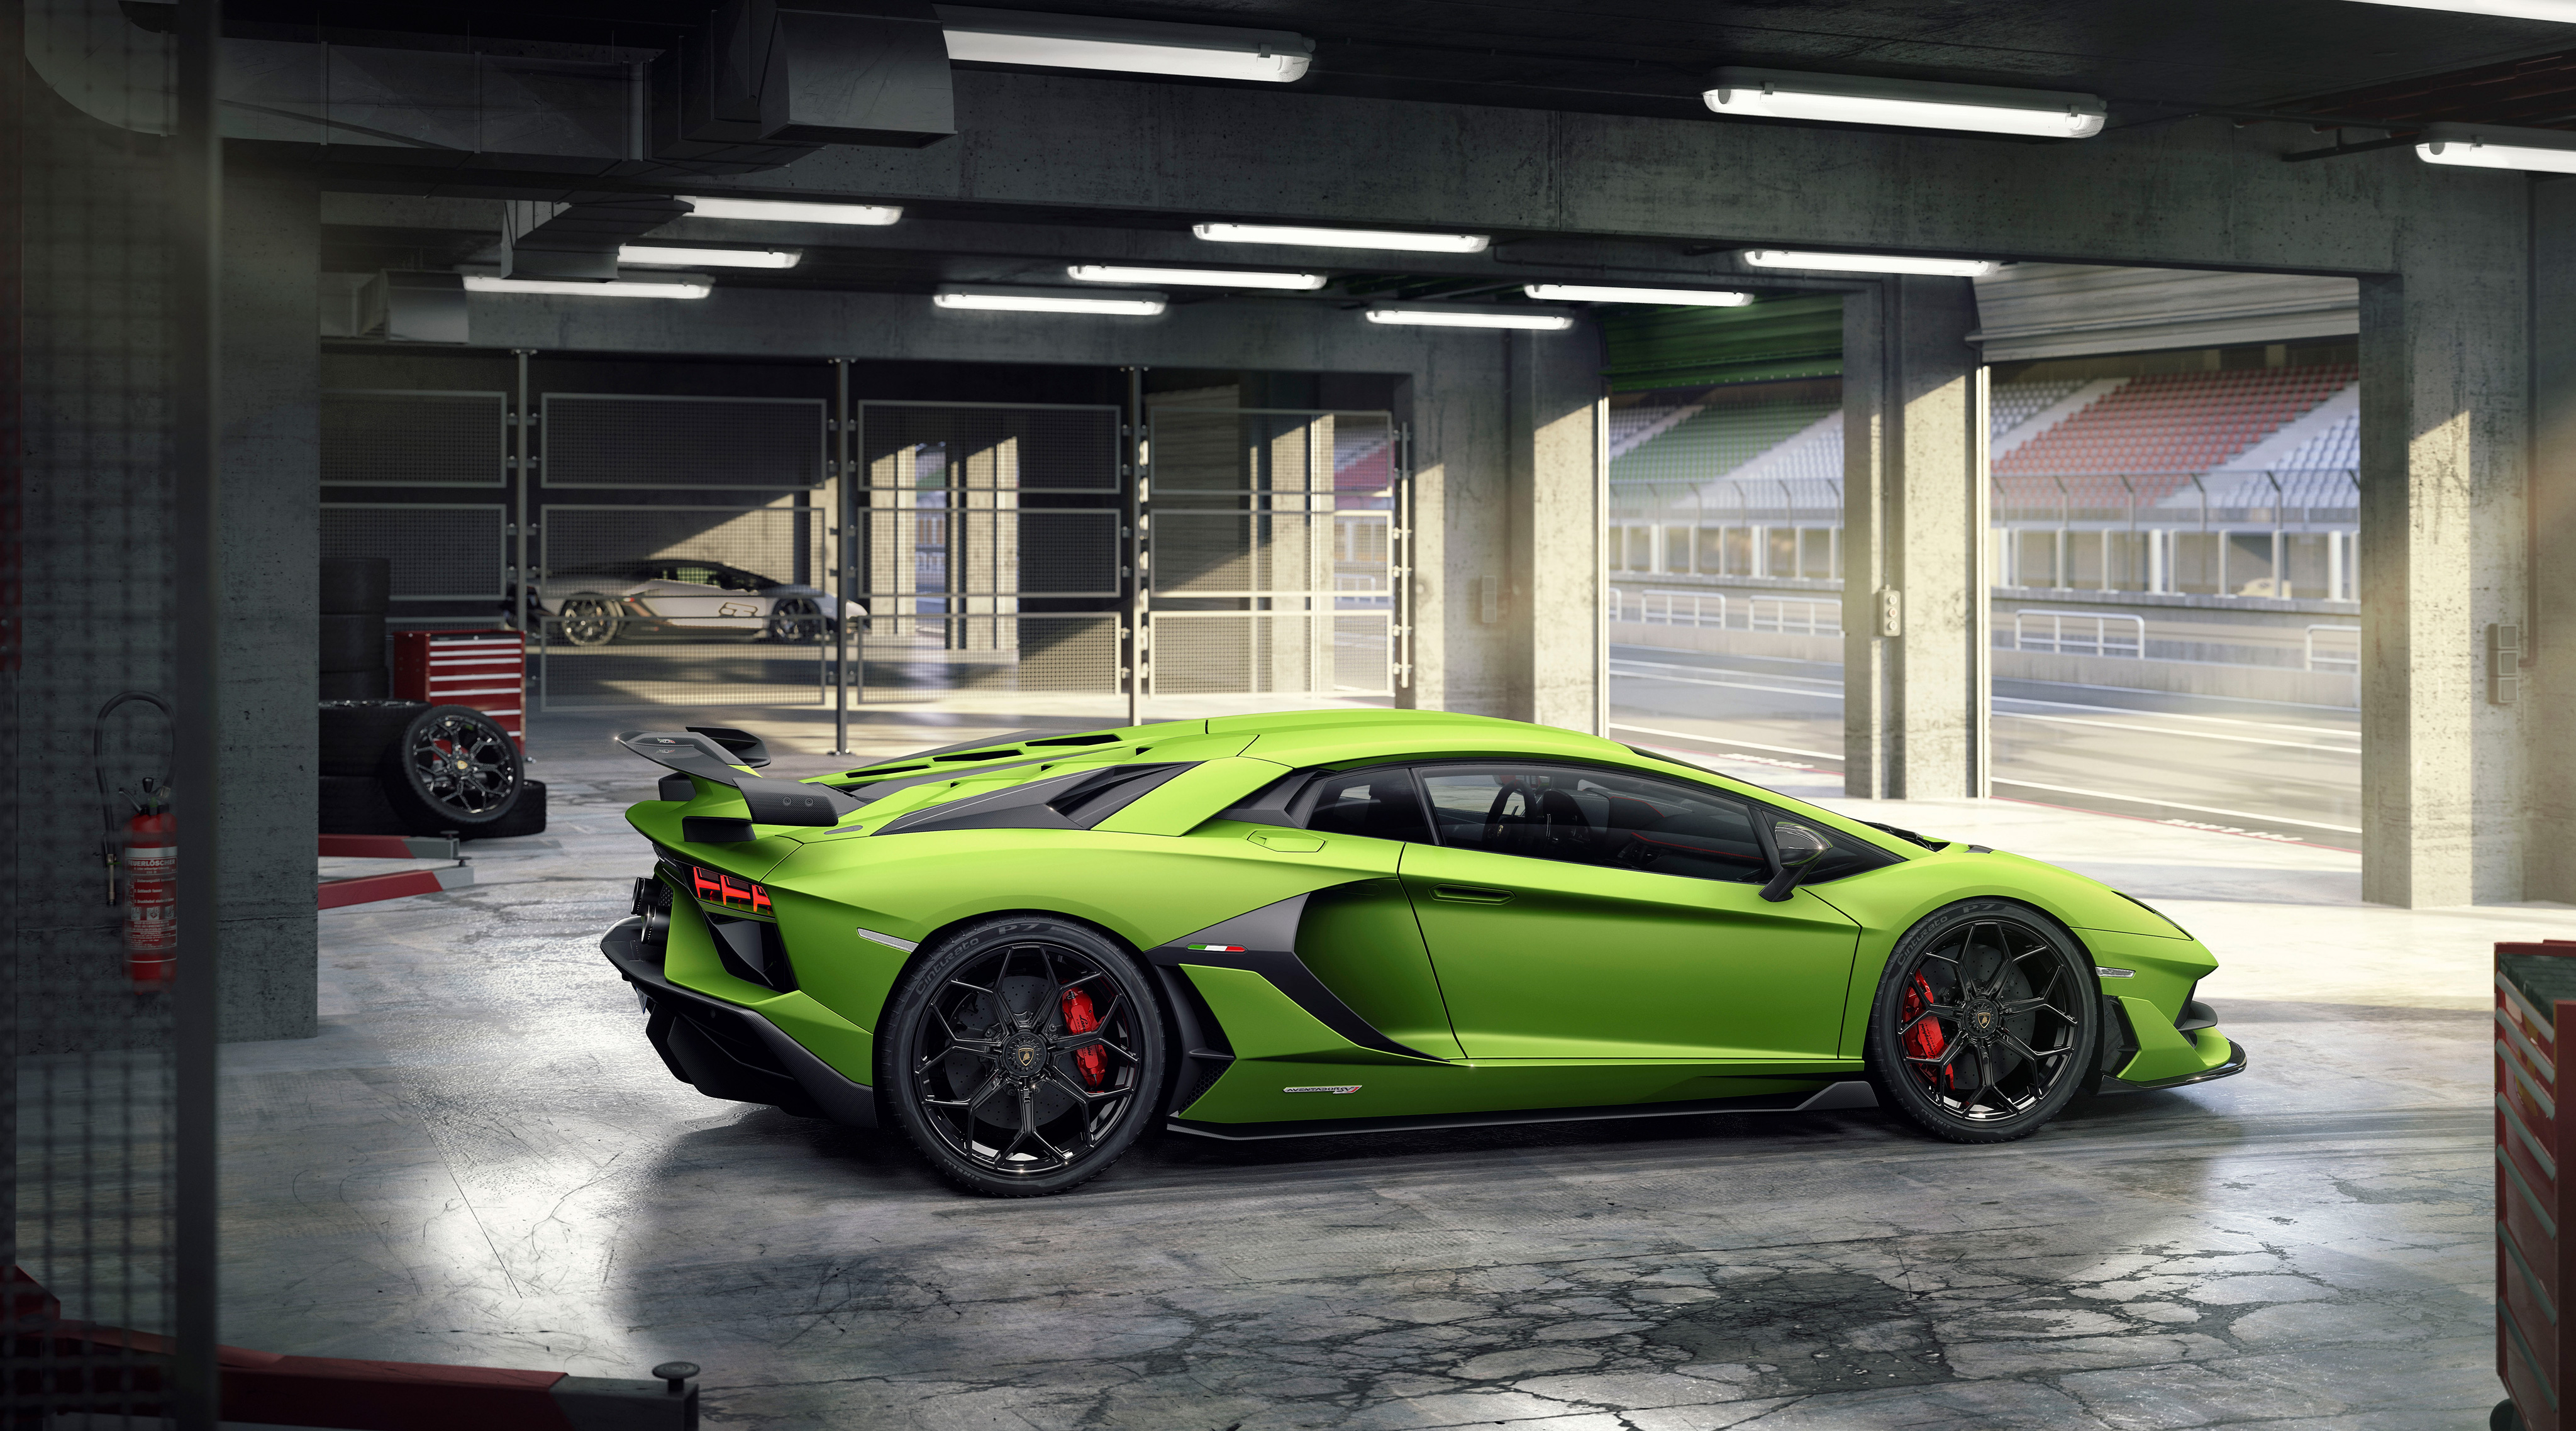 2018 Lamborghini Aventador Svj 4k Hd Cars 4k Wallpapers Images Backgrounds Photos And Pictures